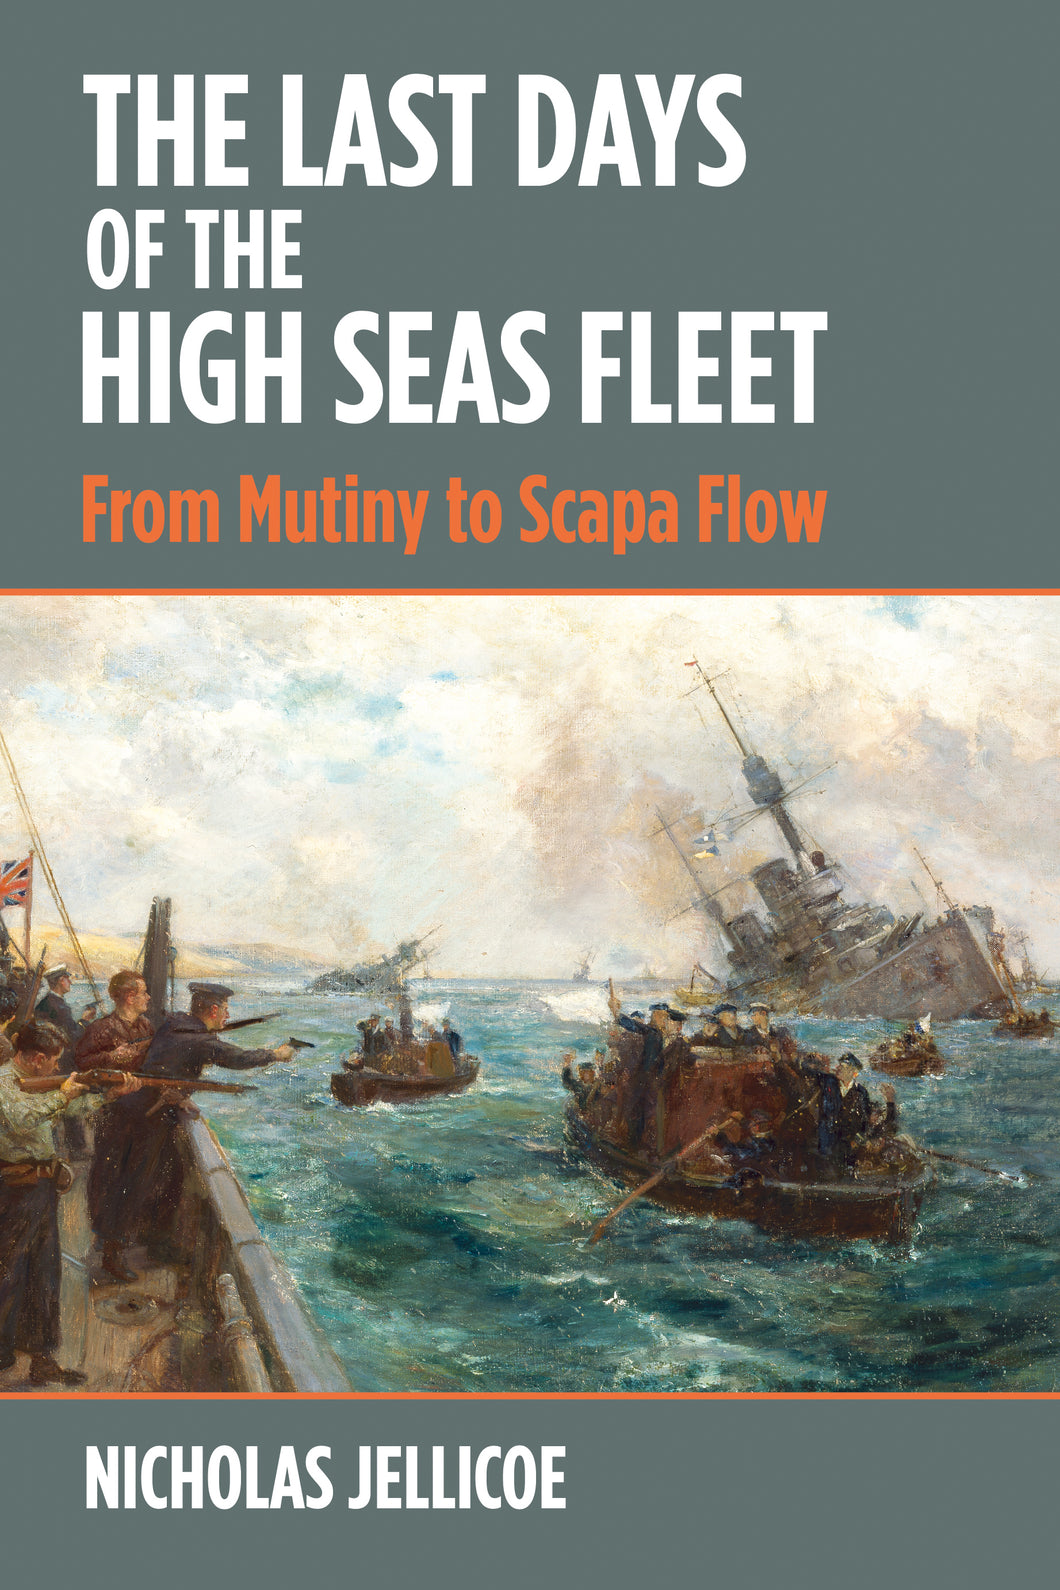 The Last Days of the High Seas Fleet. From Mutiny to Scapa Flow